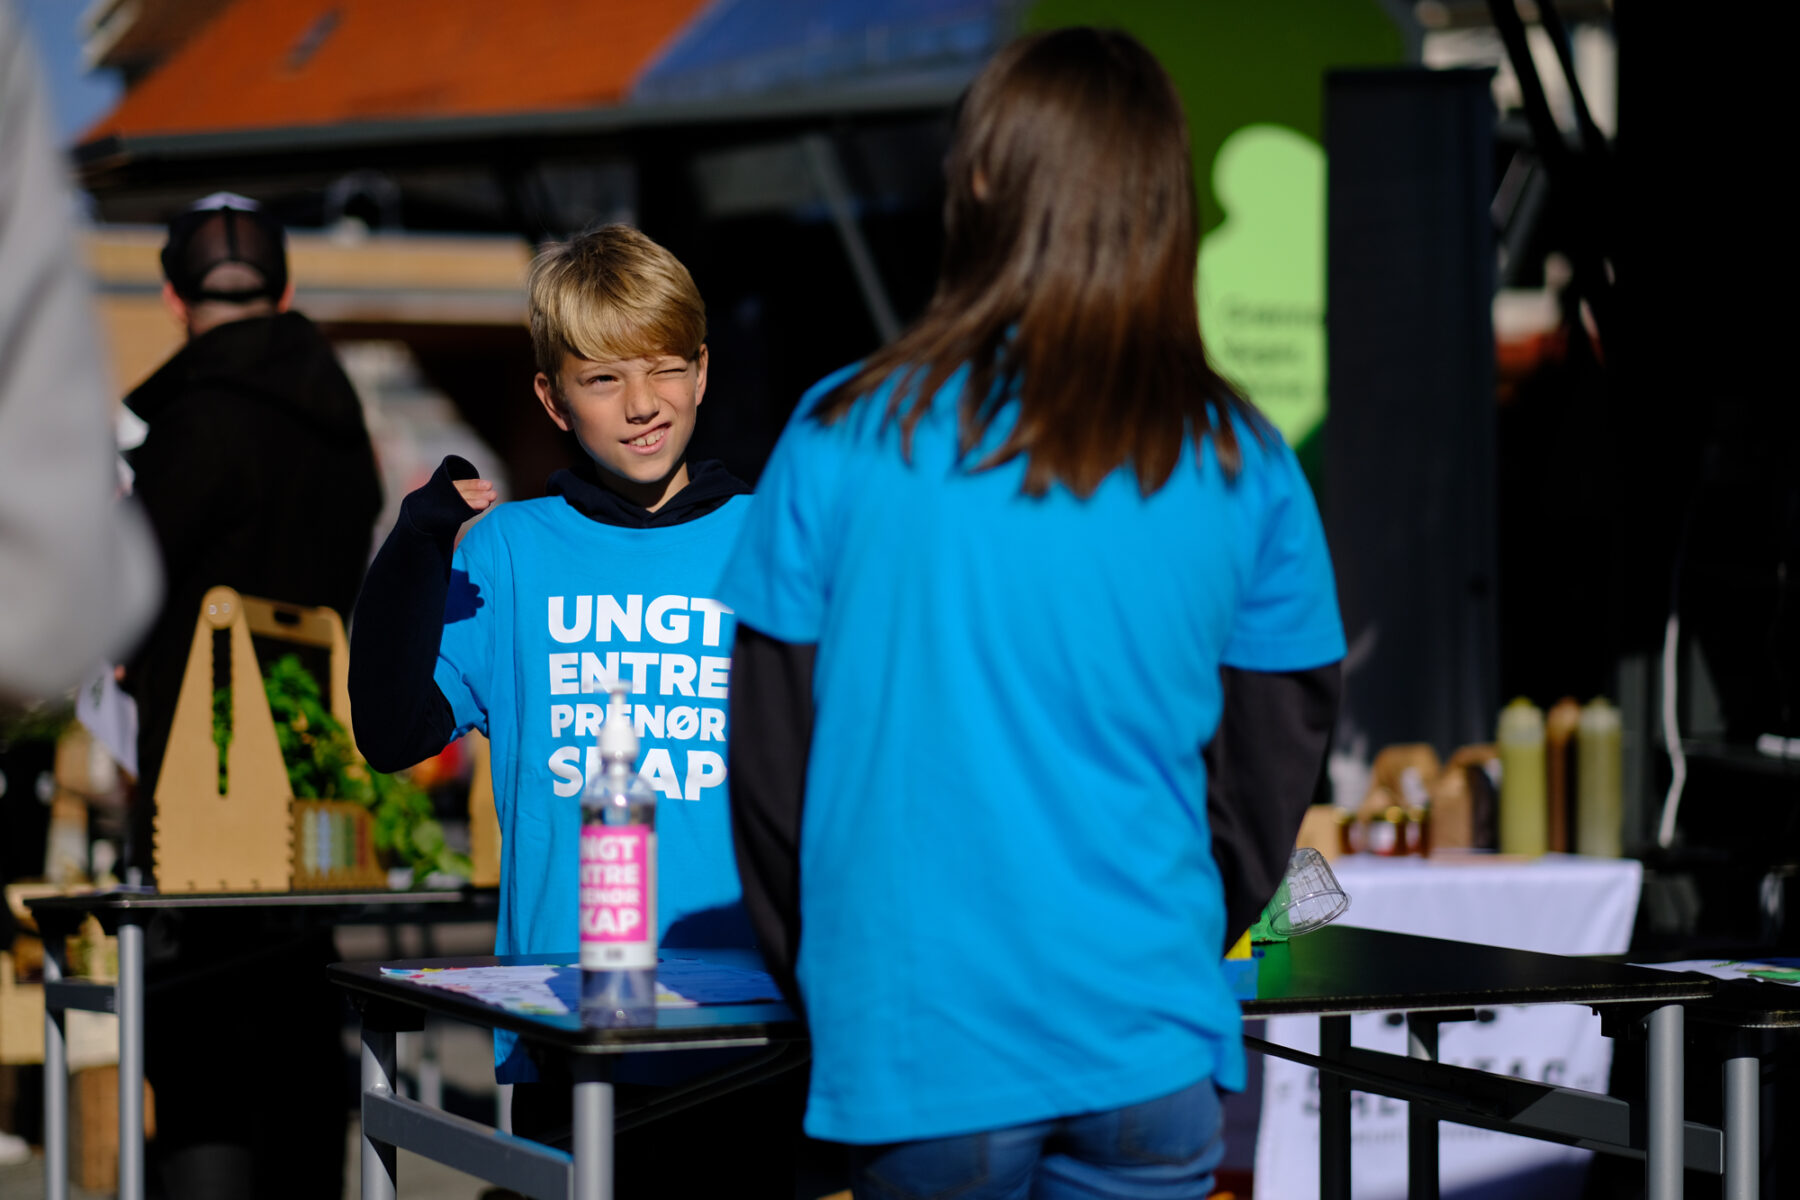 Young Entrepreneurs and the square